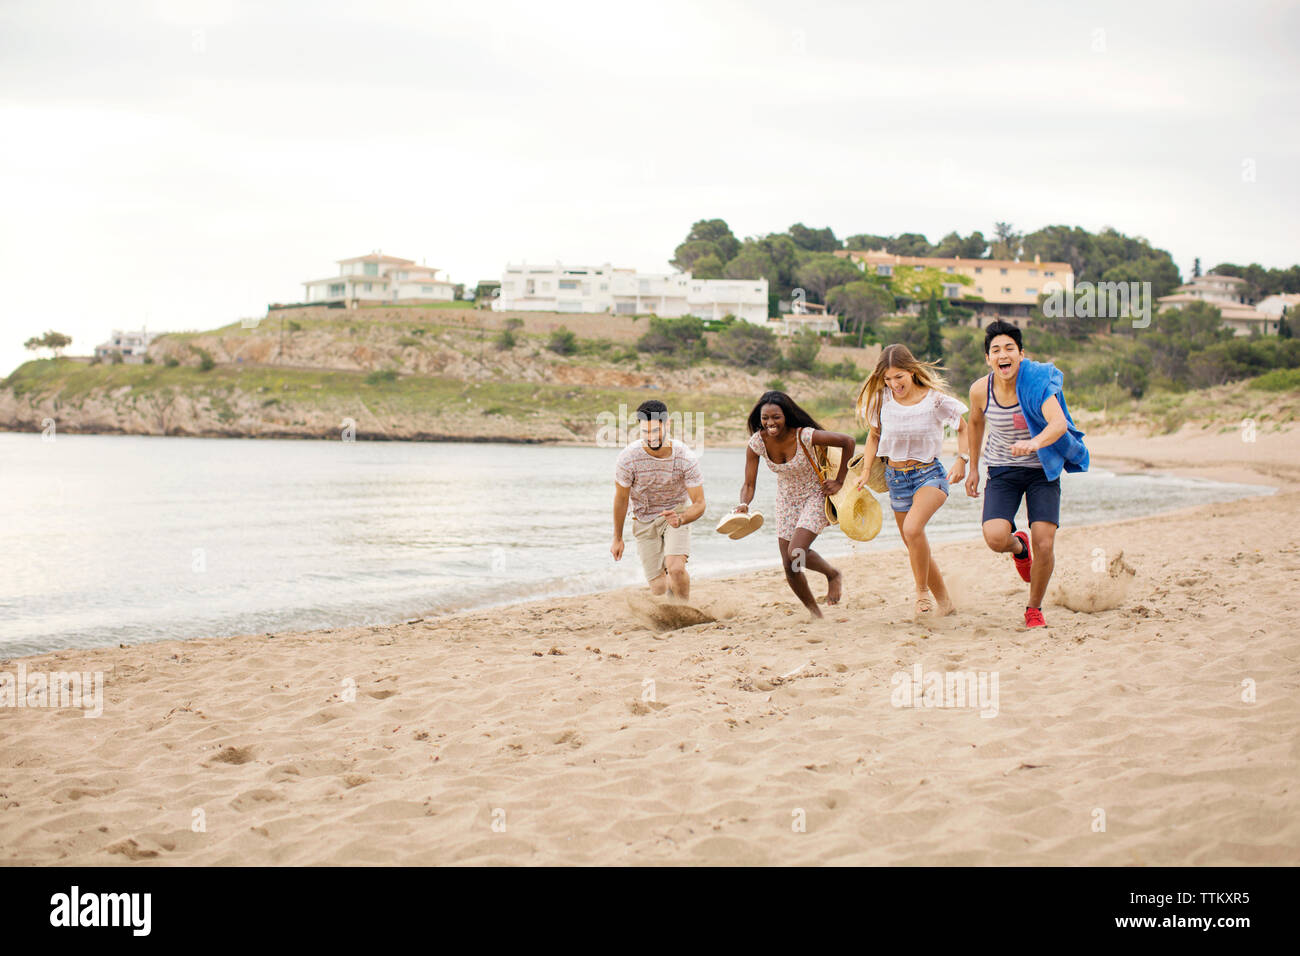 Playful friends running on shore at beach during vacation - Stock Image